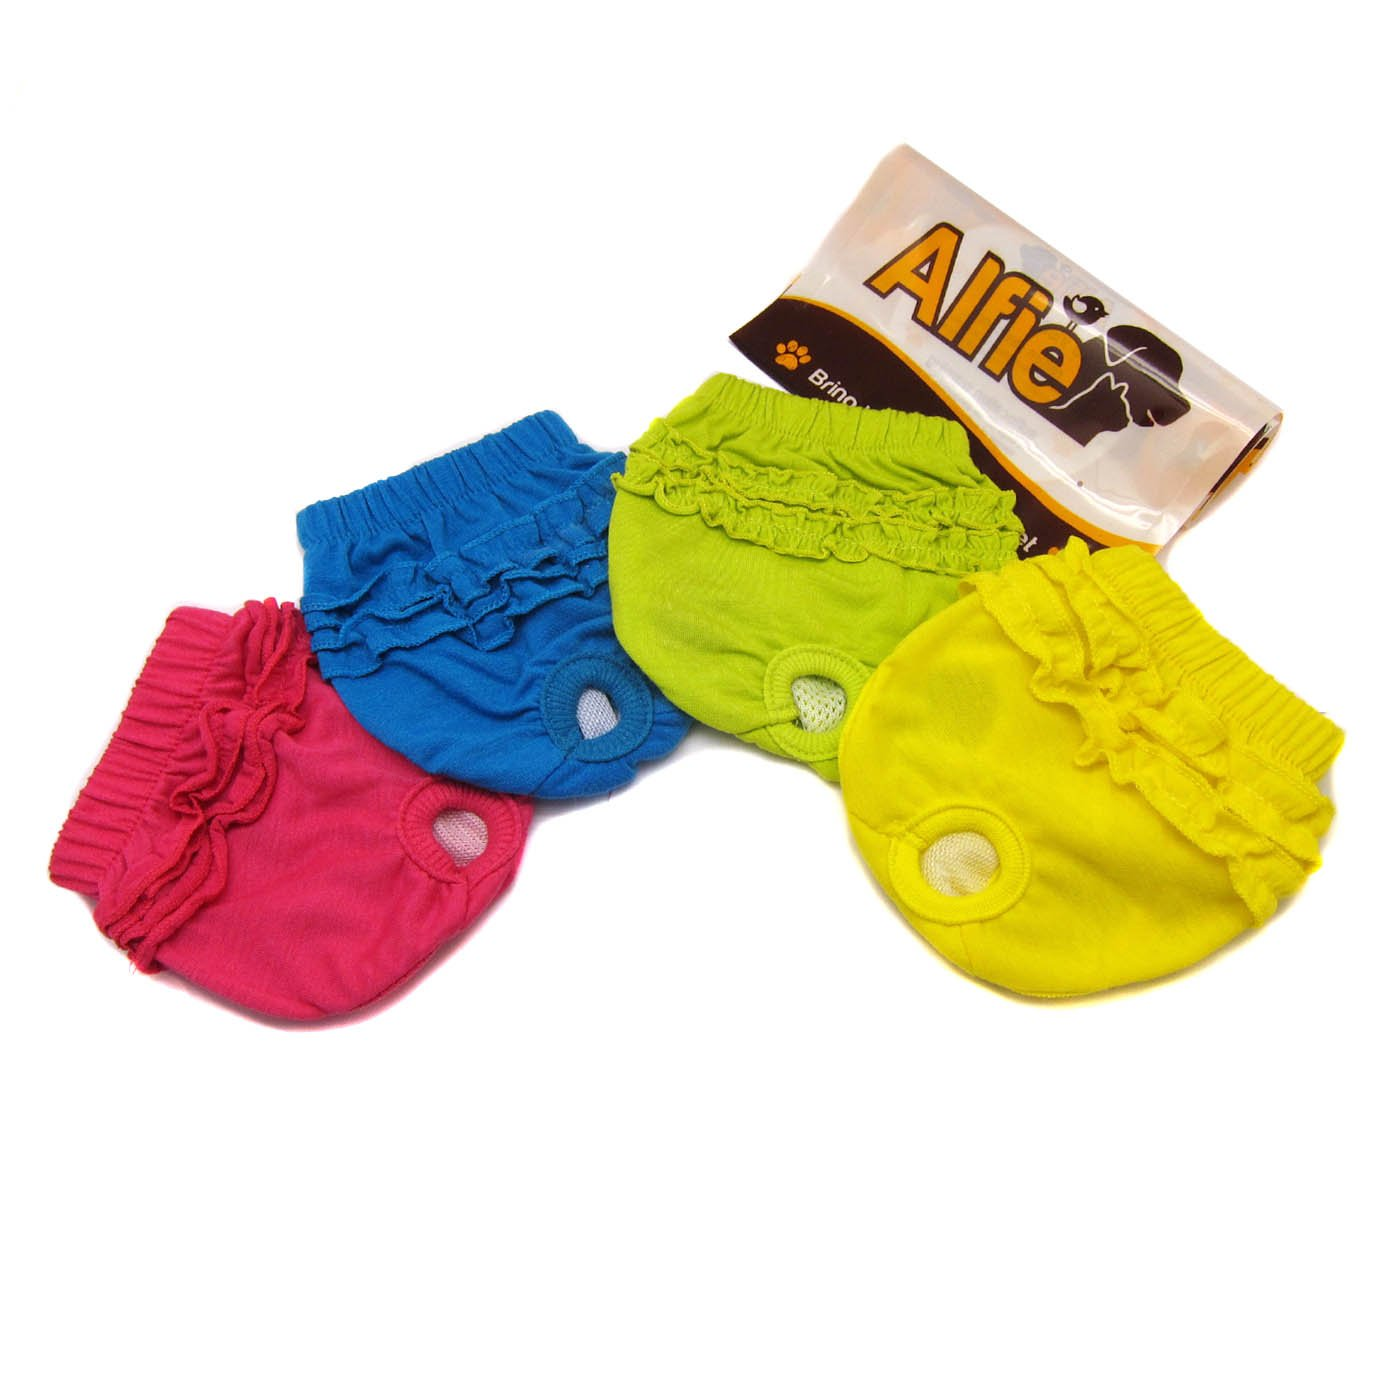 Alfie Pet by Petoga Couture - BAMI Diaper Dog Sanitary Pantie 4-Piece Set - Size: M (for Girl Dogs)